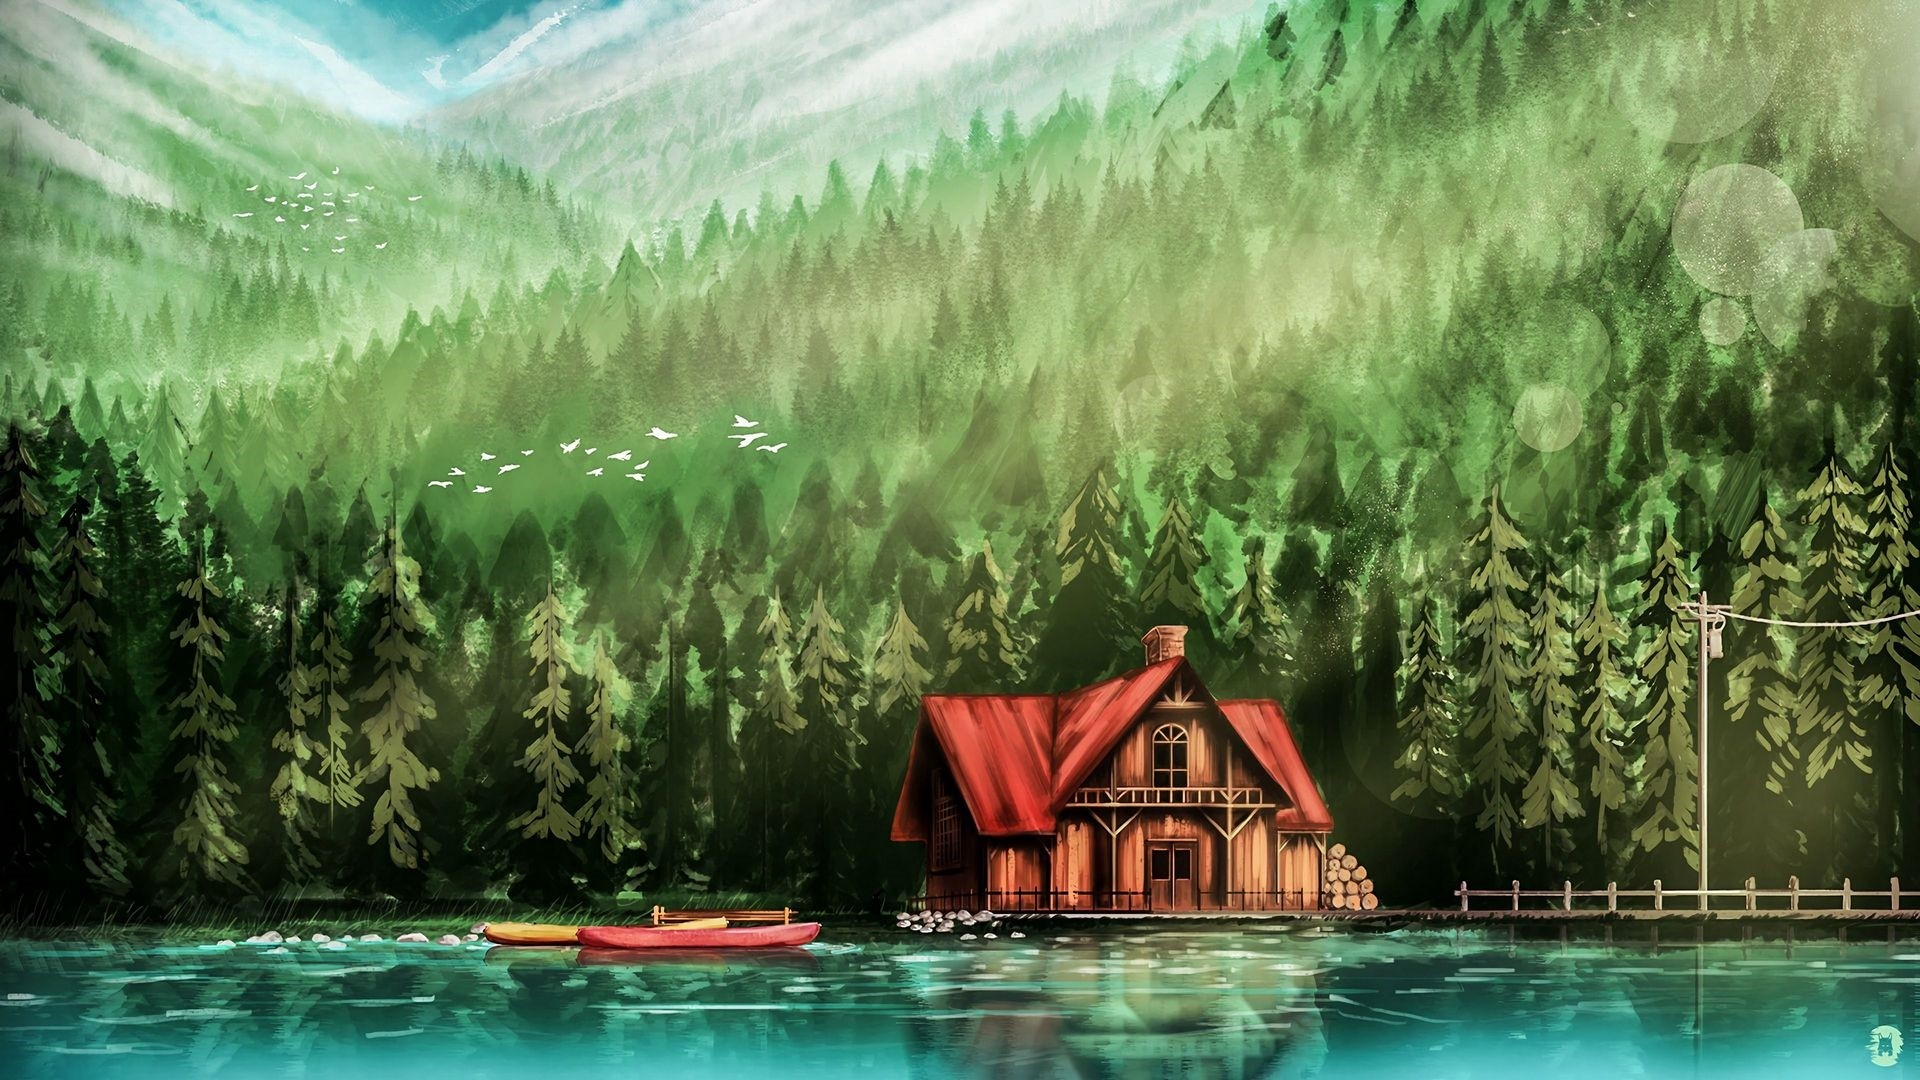 House By The River Art PC Wallpaper